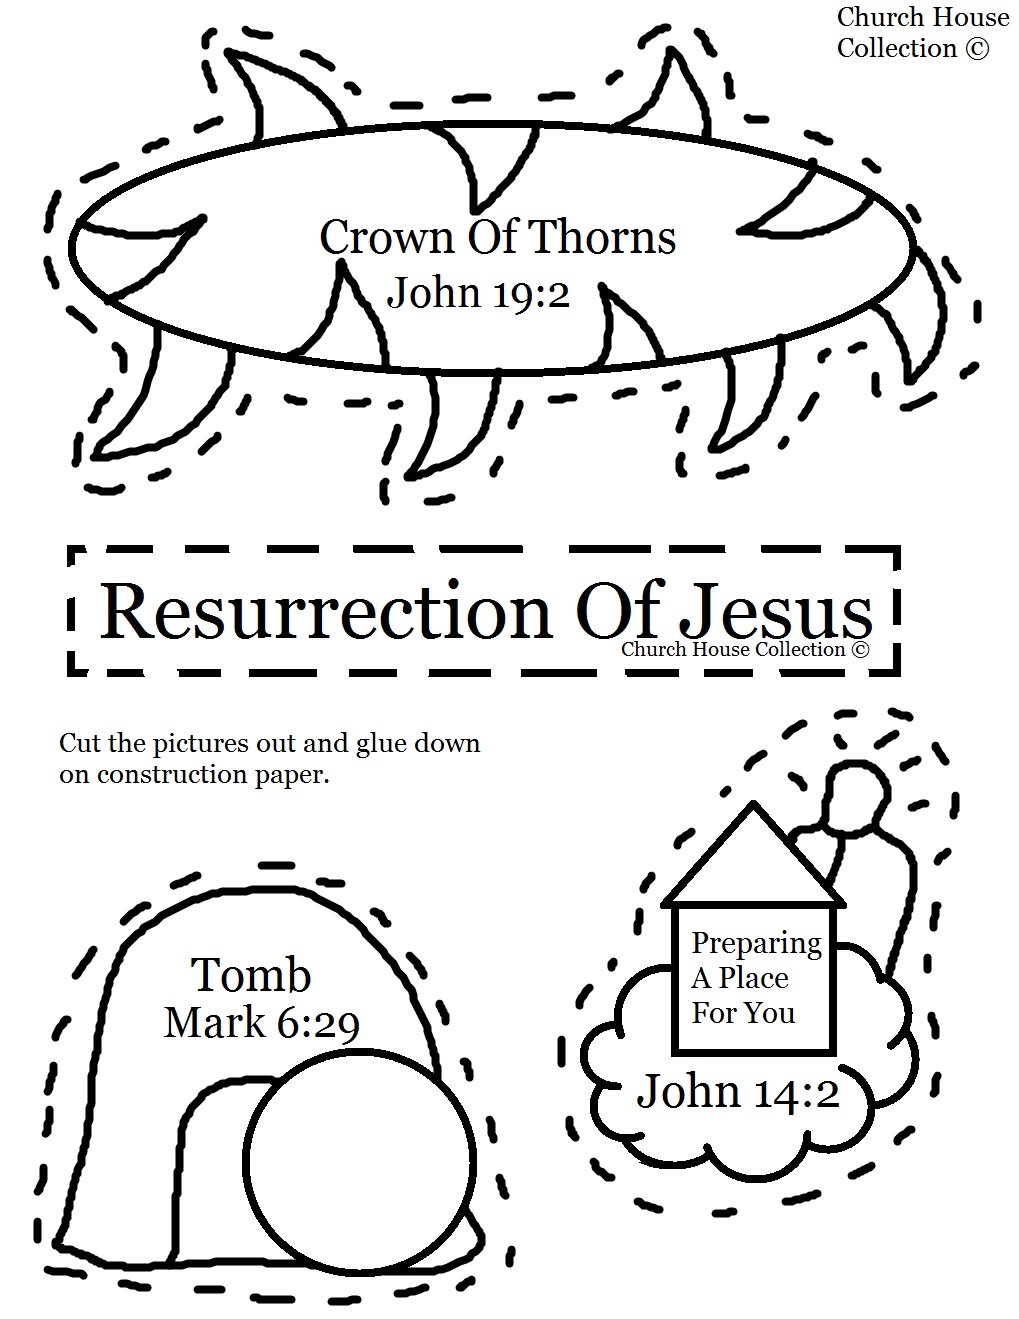 Church House Collection Blog: Resurrection of Jesus Cut Out Craft ...